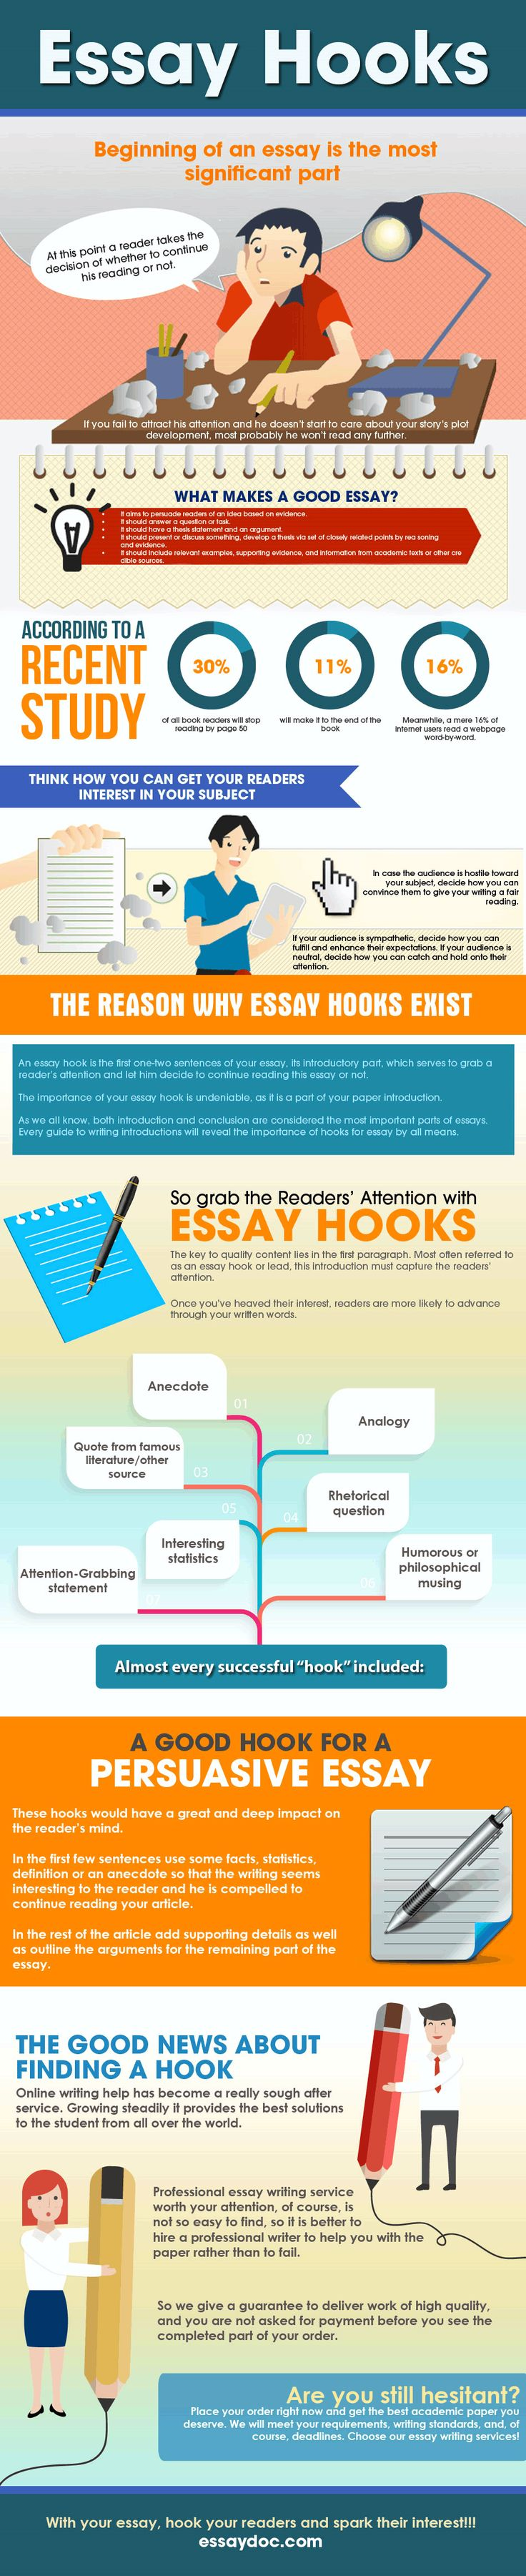 best ideas about essay writing essay writing essay hooks infographic trait writingstudy